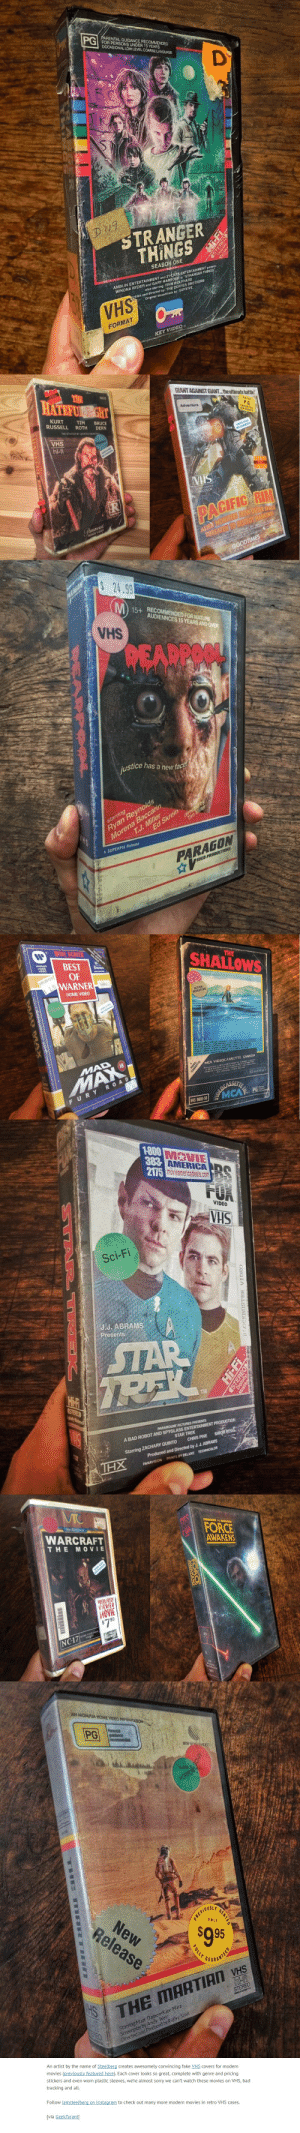 """Bad, Blockbuster, and Chris Pine: PARENTAL GUIDANCE RECOMMENDED  G FOR PERSONS UNDER 15 YEARS  OCCASIONAL LOW LEVEL COARSE LANGUAGE  BC  STRANGER  THINGS  SEASON ONE  WINONA RYDER and GARY HARBOUR In """"STRANGER THINGS  also starring: FINN WOLFHARD  AMBLIN ENTERTAINMENT and 21s1 APS ENTERTAINMENT present  ritten and directed by: THE DUFFER BROTHERS  Original soundtrack by: SURVIVE  VHS  FORMAT  KEY VIDEOe  THE  HATEFUR GHT  GLANT AGAINST GIANT... the ultimate battle  6833  KURT  RUSSELL  RATED  Adventure  PG  PARENTAL  GUIDANCE  TIM  ROTH  THE STH FILM BY QUENTIN TARANTIN  BRUCE  DERN  VHS  VIDEO STAFF  RECOMMENDS  Western  hi-fi  VDEO STAFF  MENDS  VHS  video-cassette  IN COLOR  PACIFIC RIM  ALLER MONSTERS FROMOUTER SPACE  THREATEN TO DESTROY MANKIND!  Paramount  HOME VIDED  gEs heser d N  WMORLMT  frodu HATO  GOODTIMES  $24.99  M 15+  RECOMMENDED FOR MATURE  AUDIENNCES 15 YEARS AND OVER  SHA  REAPPOOL  justice has a new face  Ryan Reynolds  Ed Skrein  Morena Baccarin  TJ. Miller  directod by  Tim Mller  starring  A SUPERPIX Relese  PARAGON  PIDEO PRODUCTRONS  WIDE SCREEN  STRAD  WARNER  HOME  VIDEO  BEST  OF  WARNER  SHALLOWS  THE  Stereo  69520 125  2.99  C-63  HOME VIDEO  АCTION-  ADVENTURE  HORROI  VIDEOS  POLLETEGA MUSIC SY AGOUMA PICTUNE  E 1aADRI6 and MATTLU OOLU A  MAD  MCA VIDEOCASSETTE CANADA  ued ty MCA V D 2I TIs Fe  MAX  Mamac NARAST CANADA 62  SILASETEL  MCA  FURY ROAD  PG C  VHS 6669-50  1-800 MOVIE  383 AMERICADO  2175 movieamericadeals.com  FOX  VIDEO  VHSH  Sci-Fi  J.J. ABRAMS  Presents  IAR  TREK  LE  TAM  USTERED  gtay  VAS  A BAD ROBOT AND SPYGLASS ENTERTAINMENT PRODUCTION  SIMON REGG  PARAMOUNT PICTURES PRESENTS  STAR TREK  CHRIS PINE  Starring ZACHARY QUINTO  Produced and Directed by J.J. ABRAMS  THX  PANAVISION PRINTS BY DELUXE TECHNICOLOR  VIC  PRS  FORCE  AWAKENS  NOEOTAPE CENTER  WARCRAFT  THE MOVIE  ECOM  PREVIOUSLY  VIEWED  HOVIE  $7.99  NO ONE S7 ANDUNDER  ACM  OLWOOD  NC-17  MIS  AN MGM/UA HOME VIDEO PRSVTATION  PG  Parent  guidance  NE"""